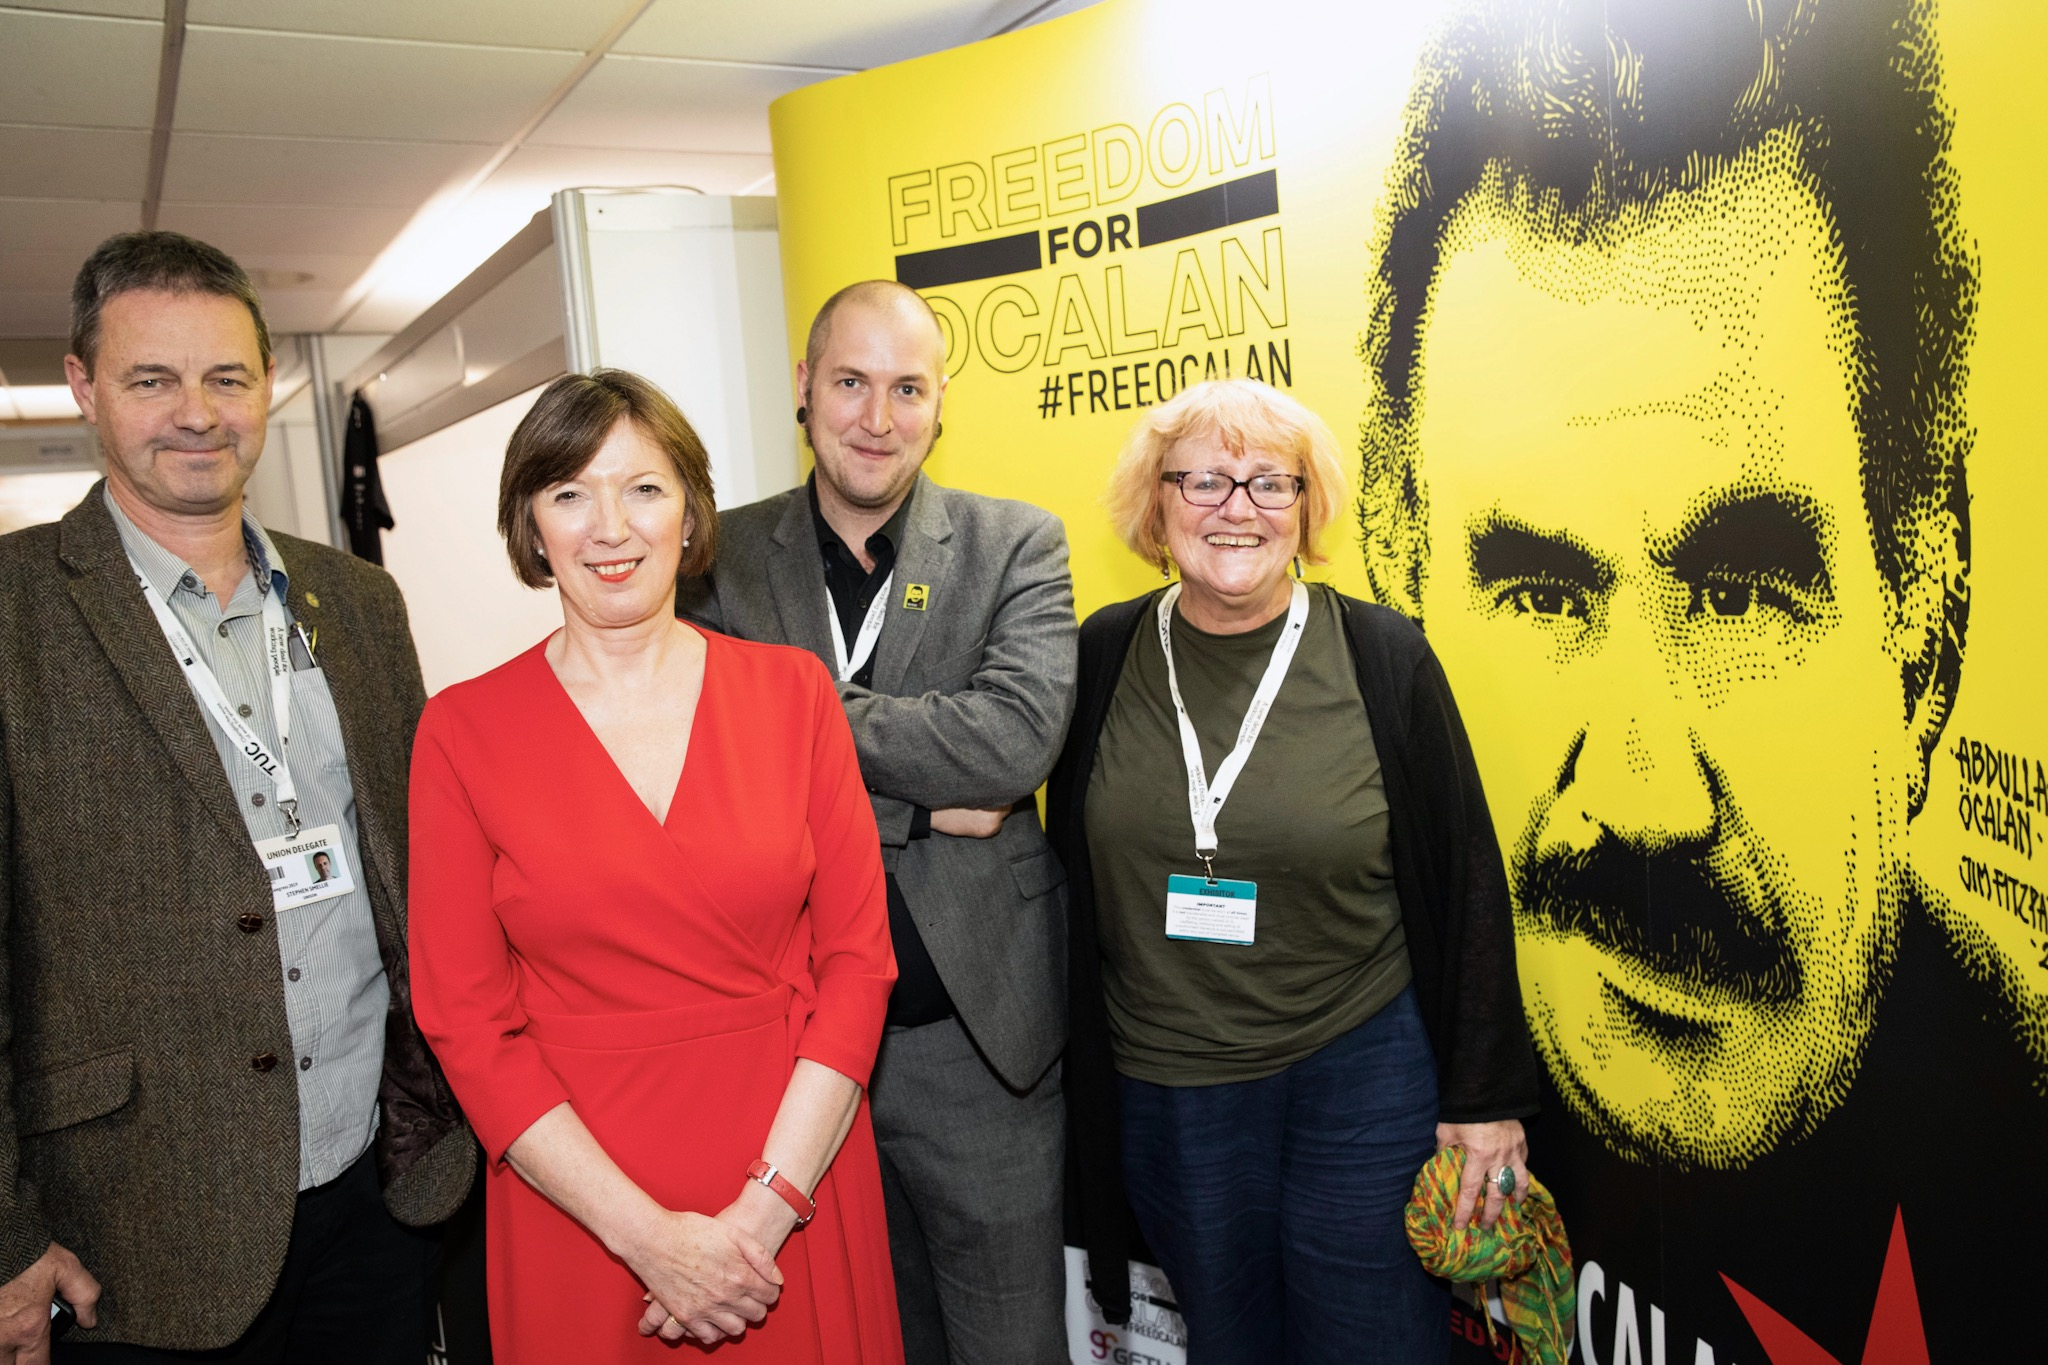 Frances O'Grady General Secretary of TUC at the Freedom for ocalan stand at TUC congress 2019